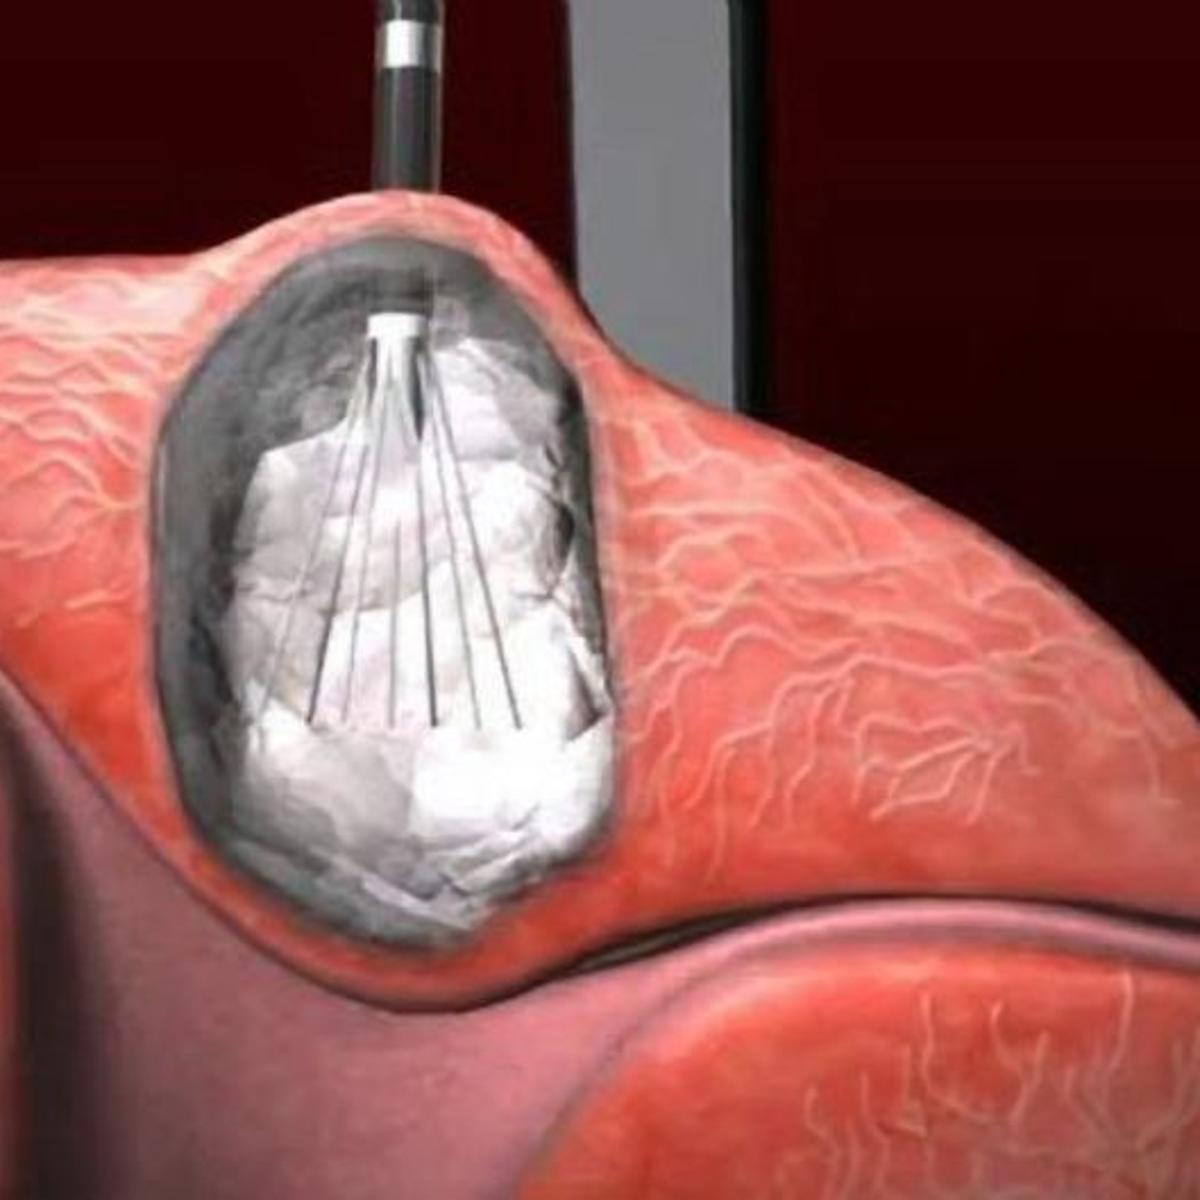 Melting Tumors Is New Option For Women With Uterine Fibroids Health Stltoday Com